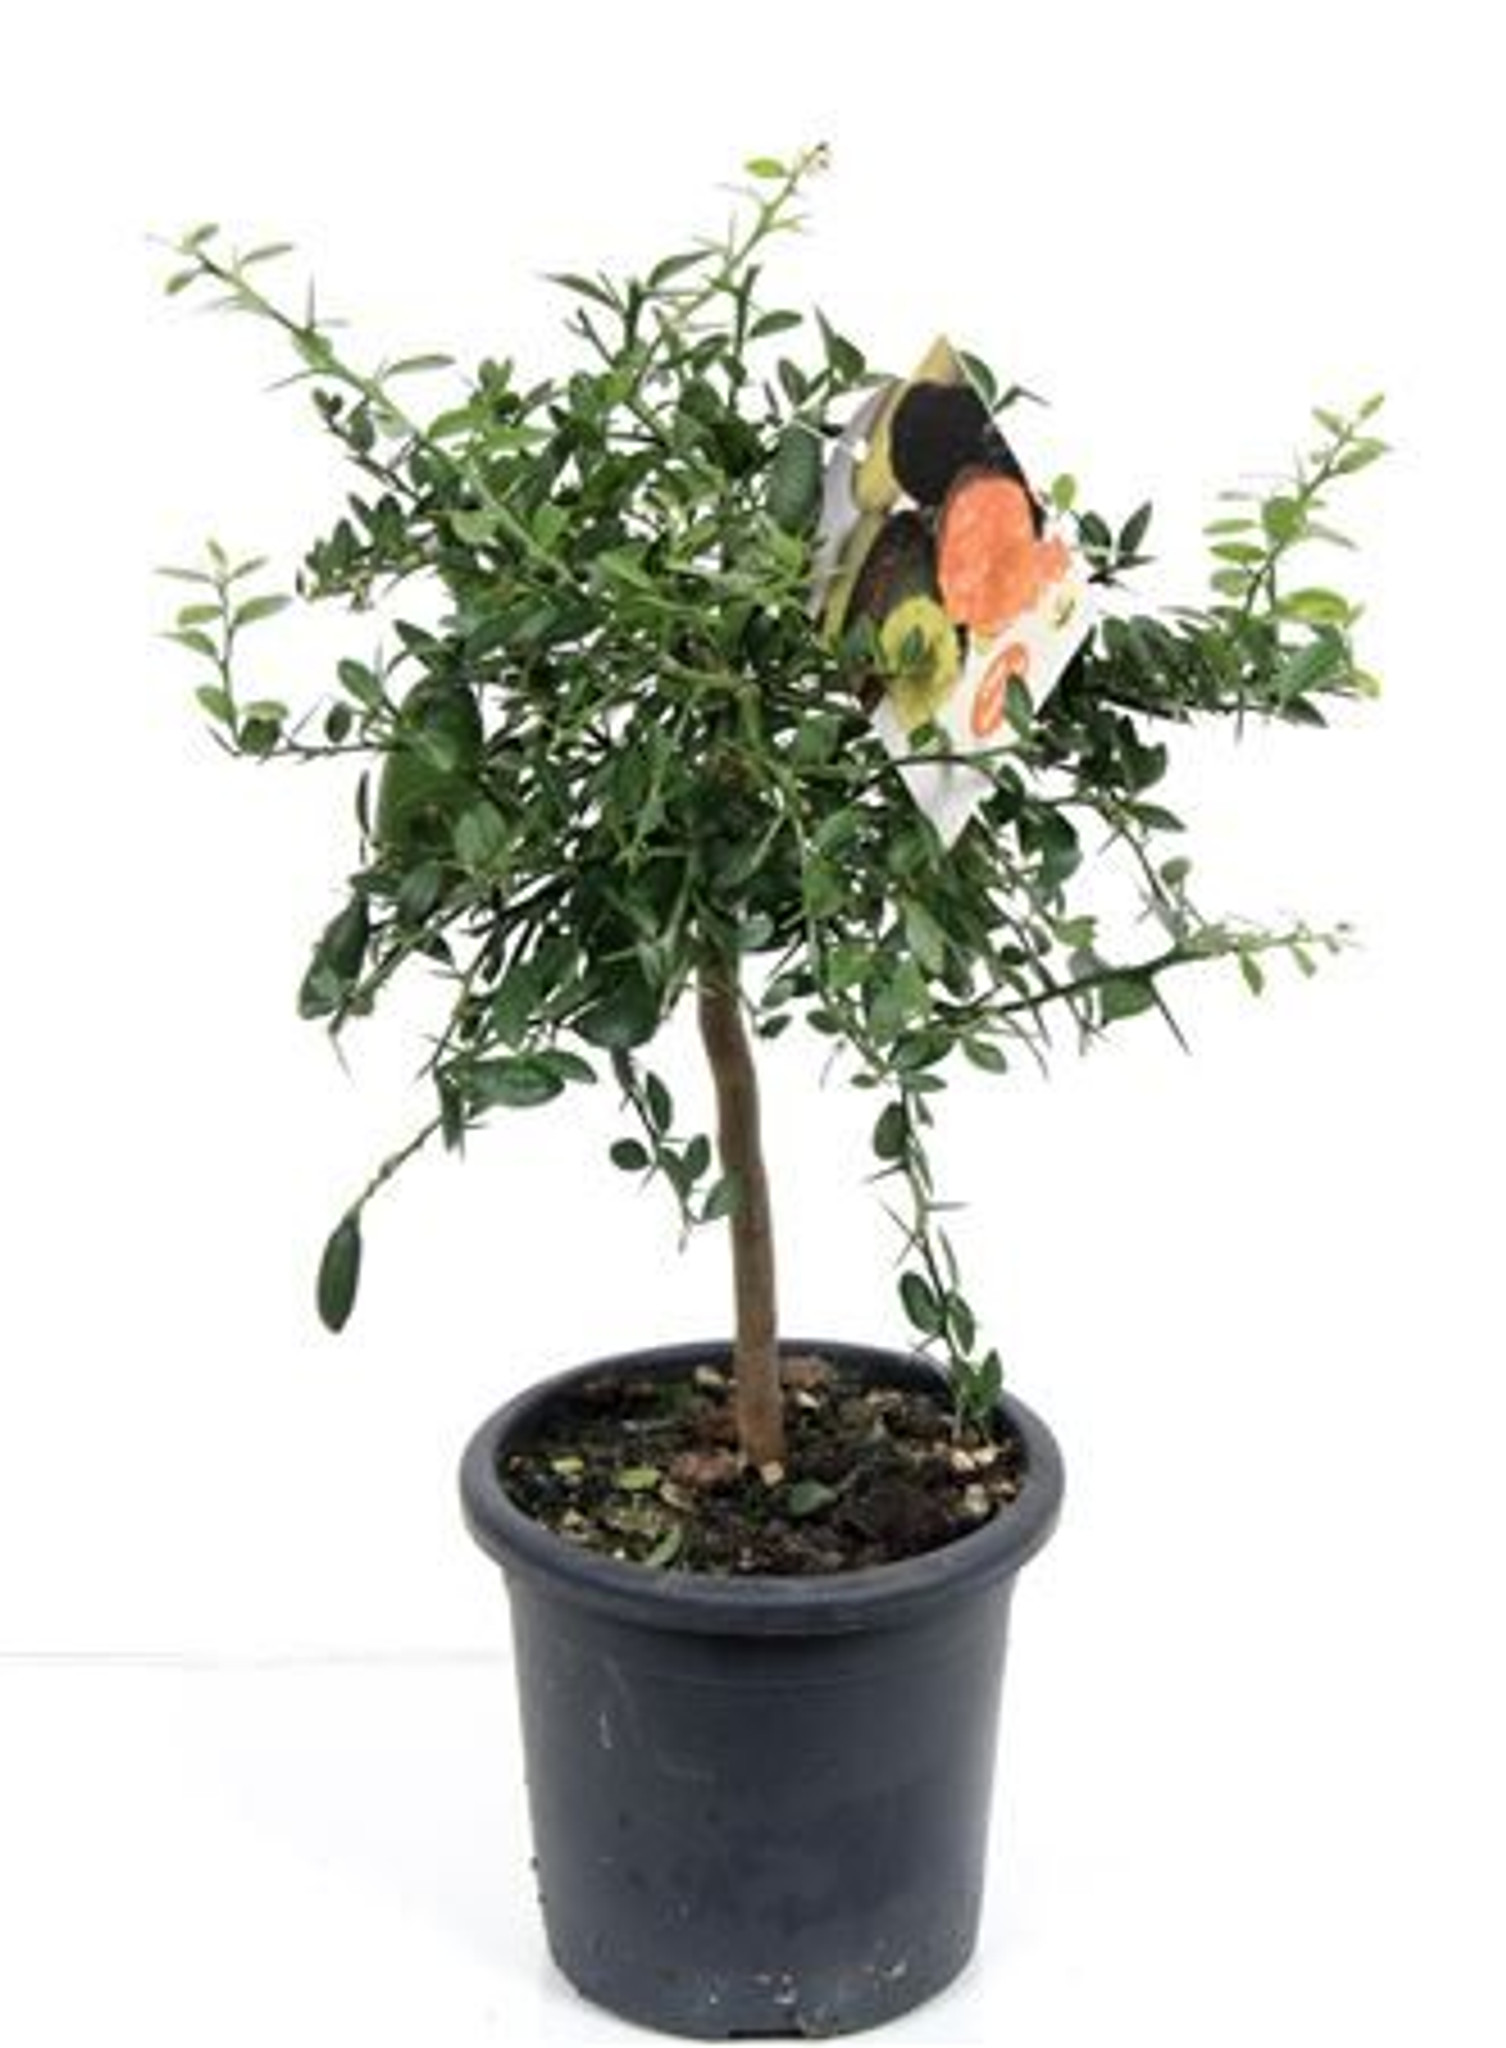 Citrus Lime 'Finger' Tree – Unique Caviar Limes Delightfully Decorative Quaint Feature for your Home